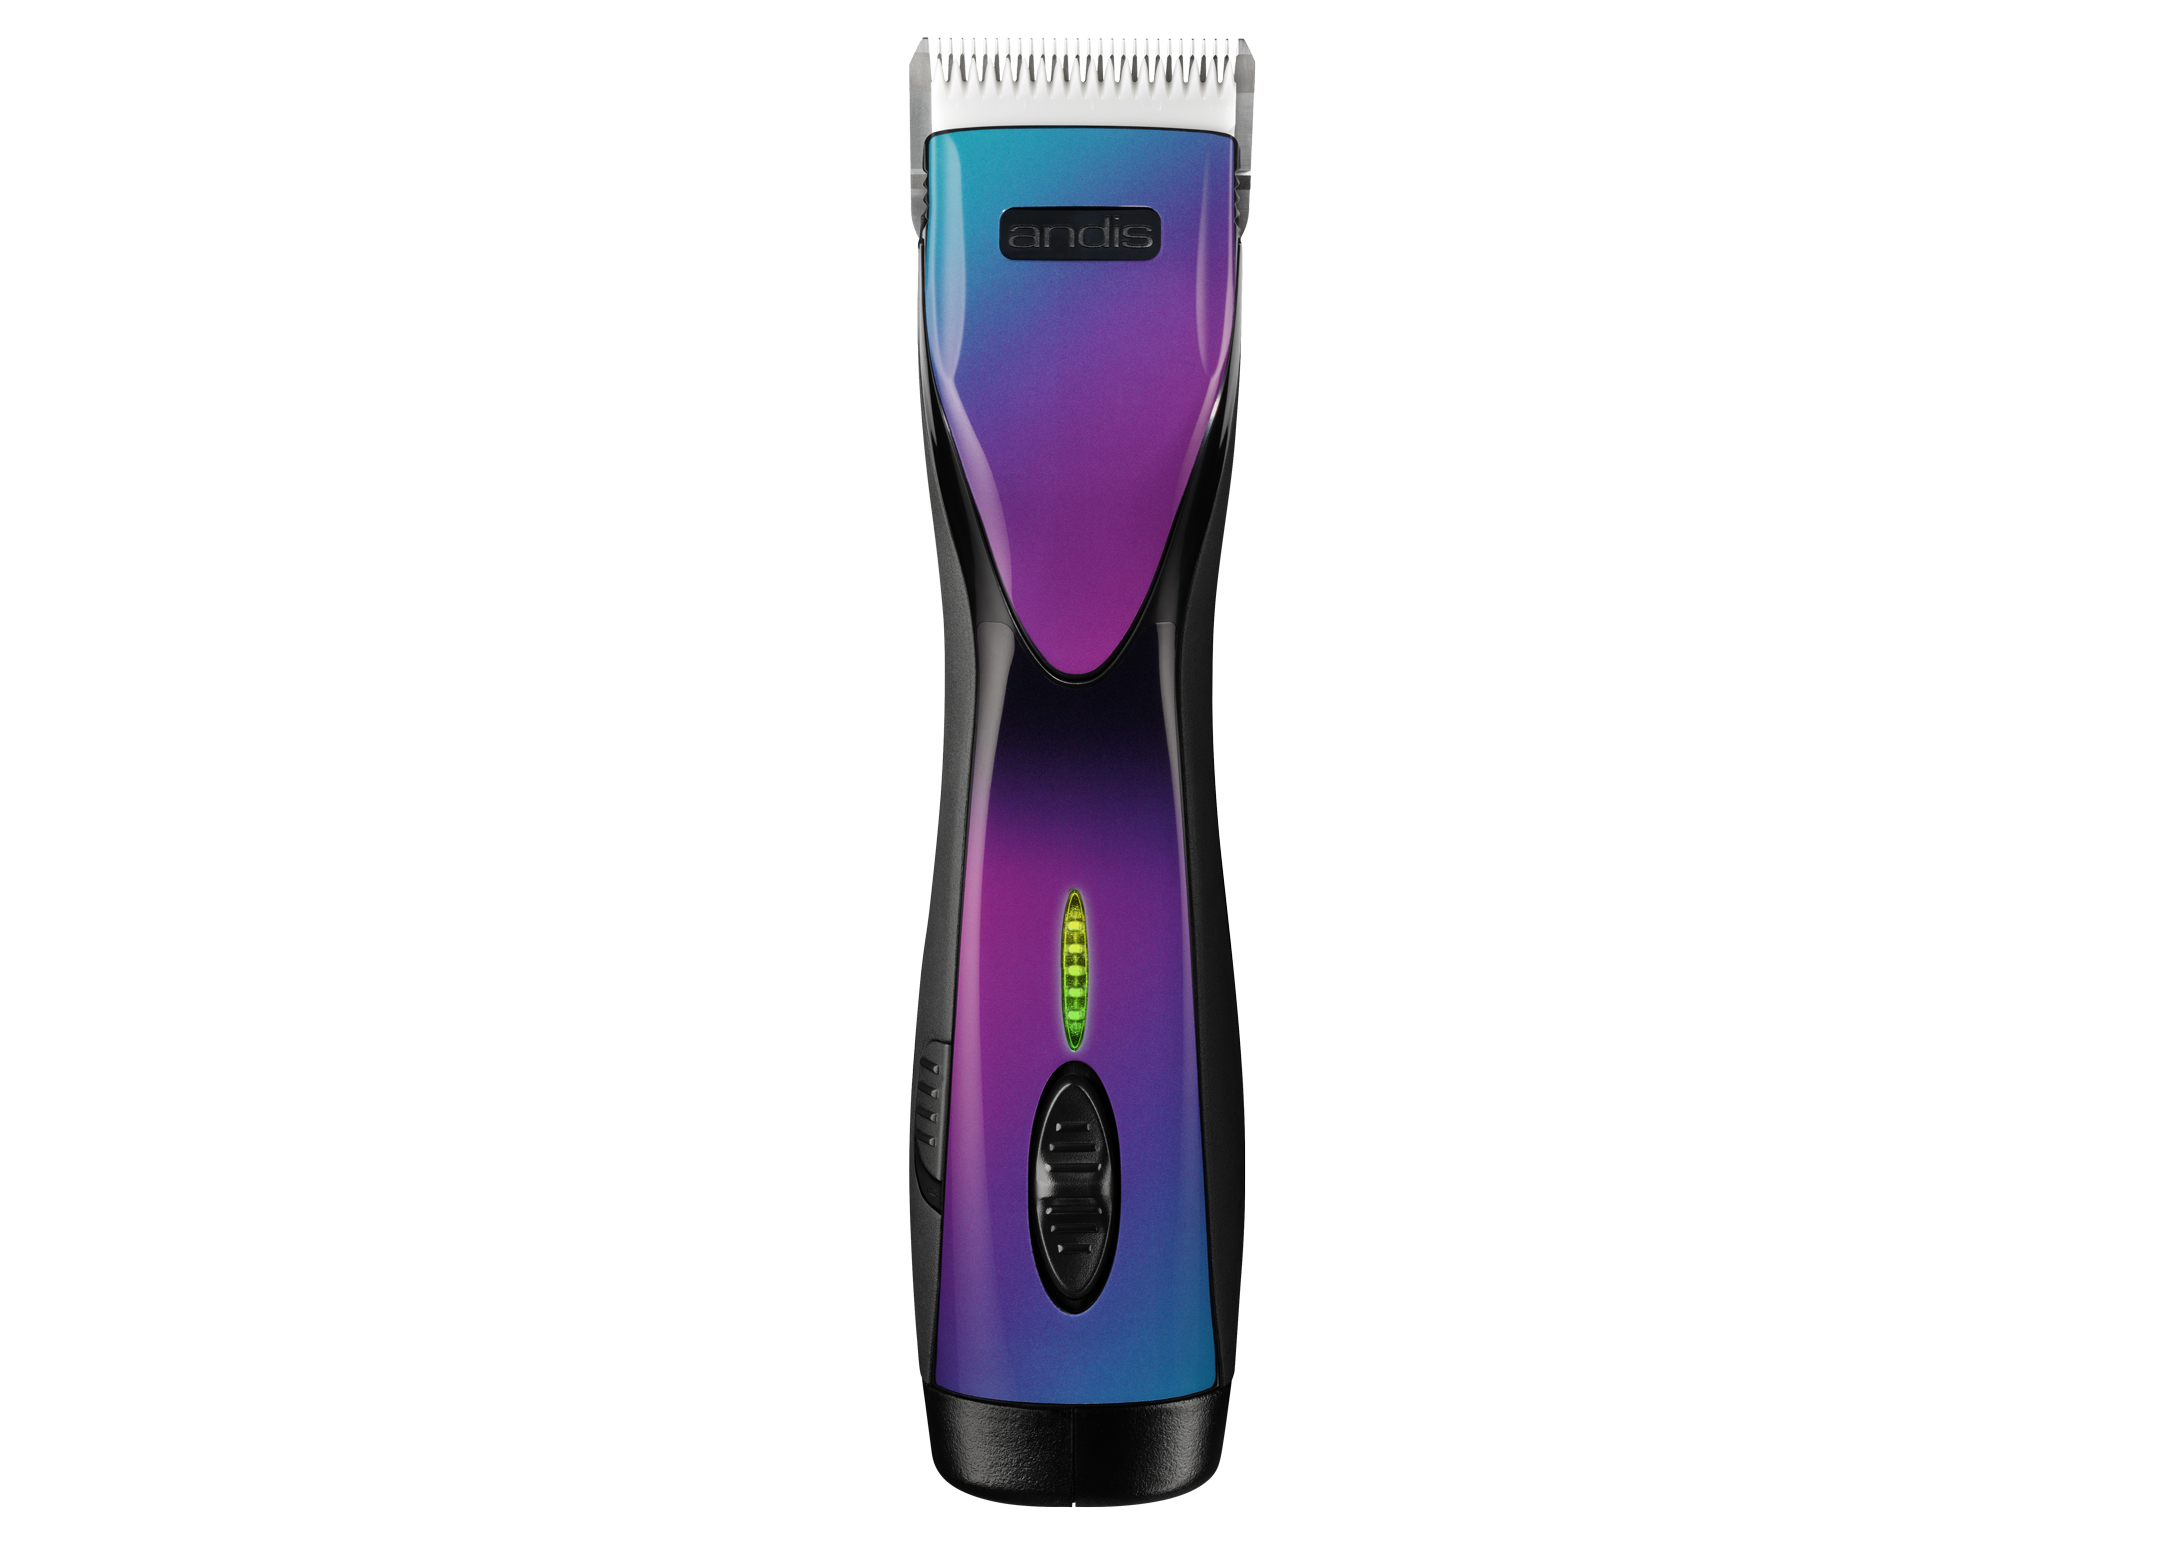 Andis Pulse ZR II 5-Speed Limited Edition Cordless Clipper with #10 Blade